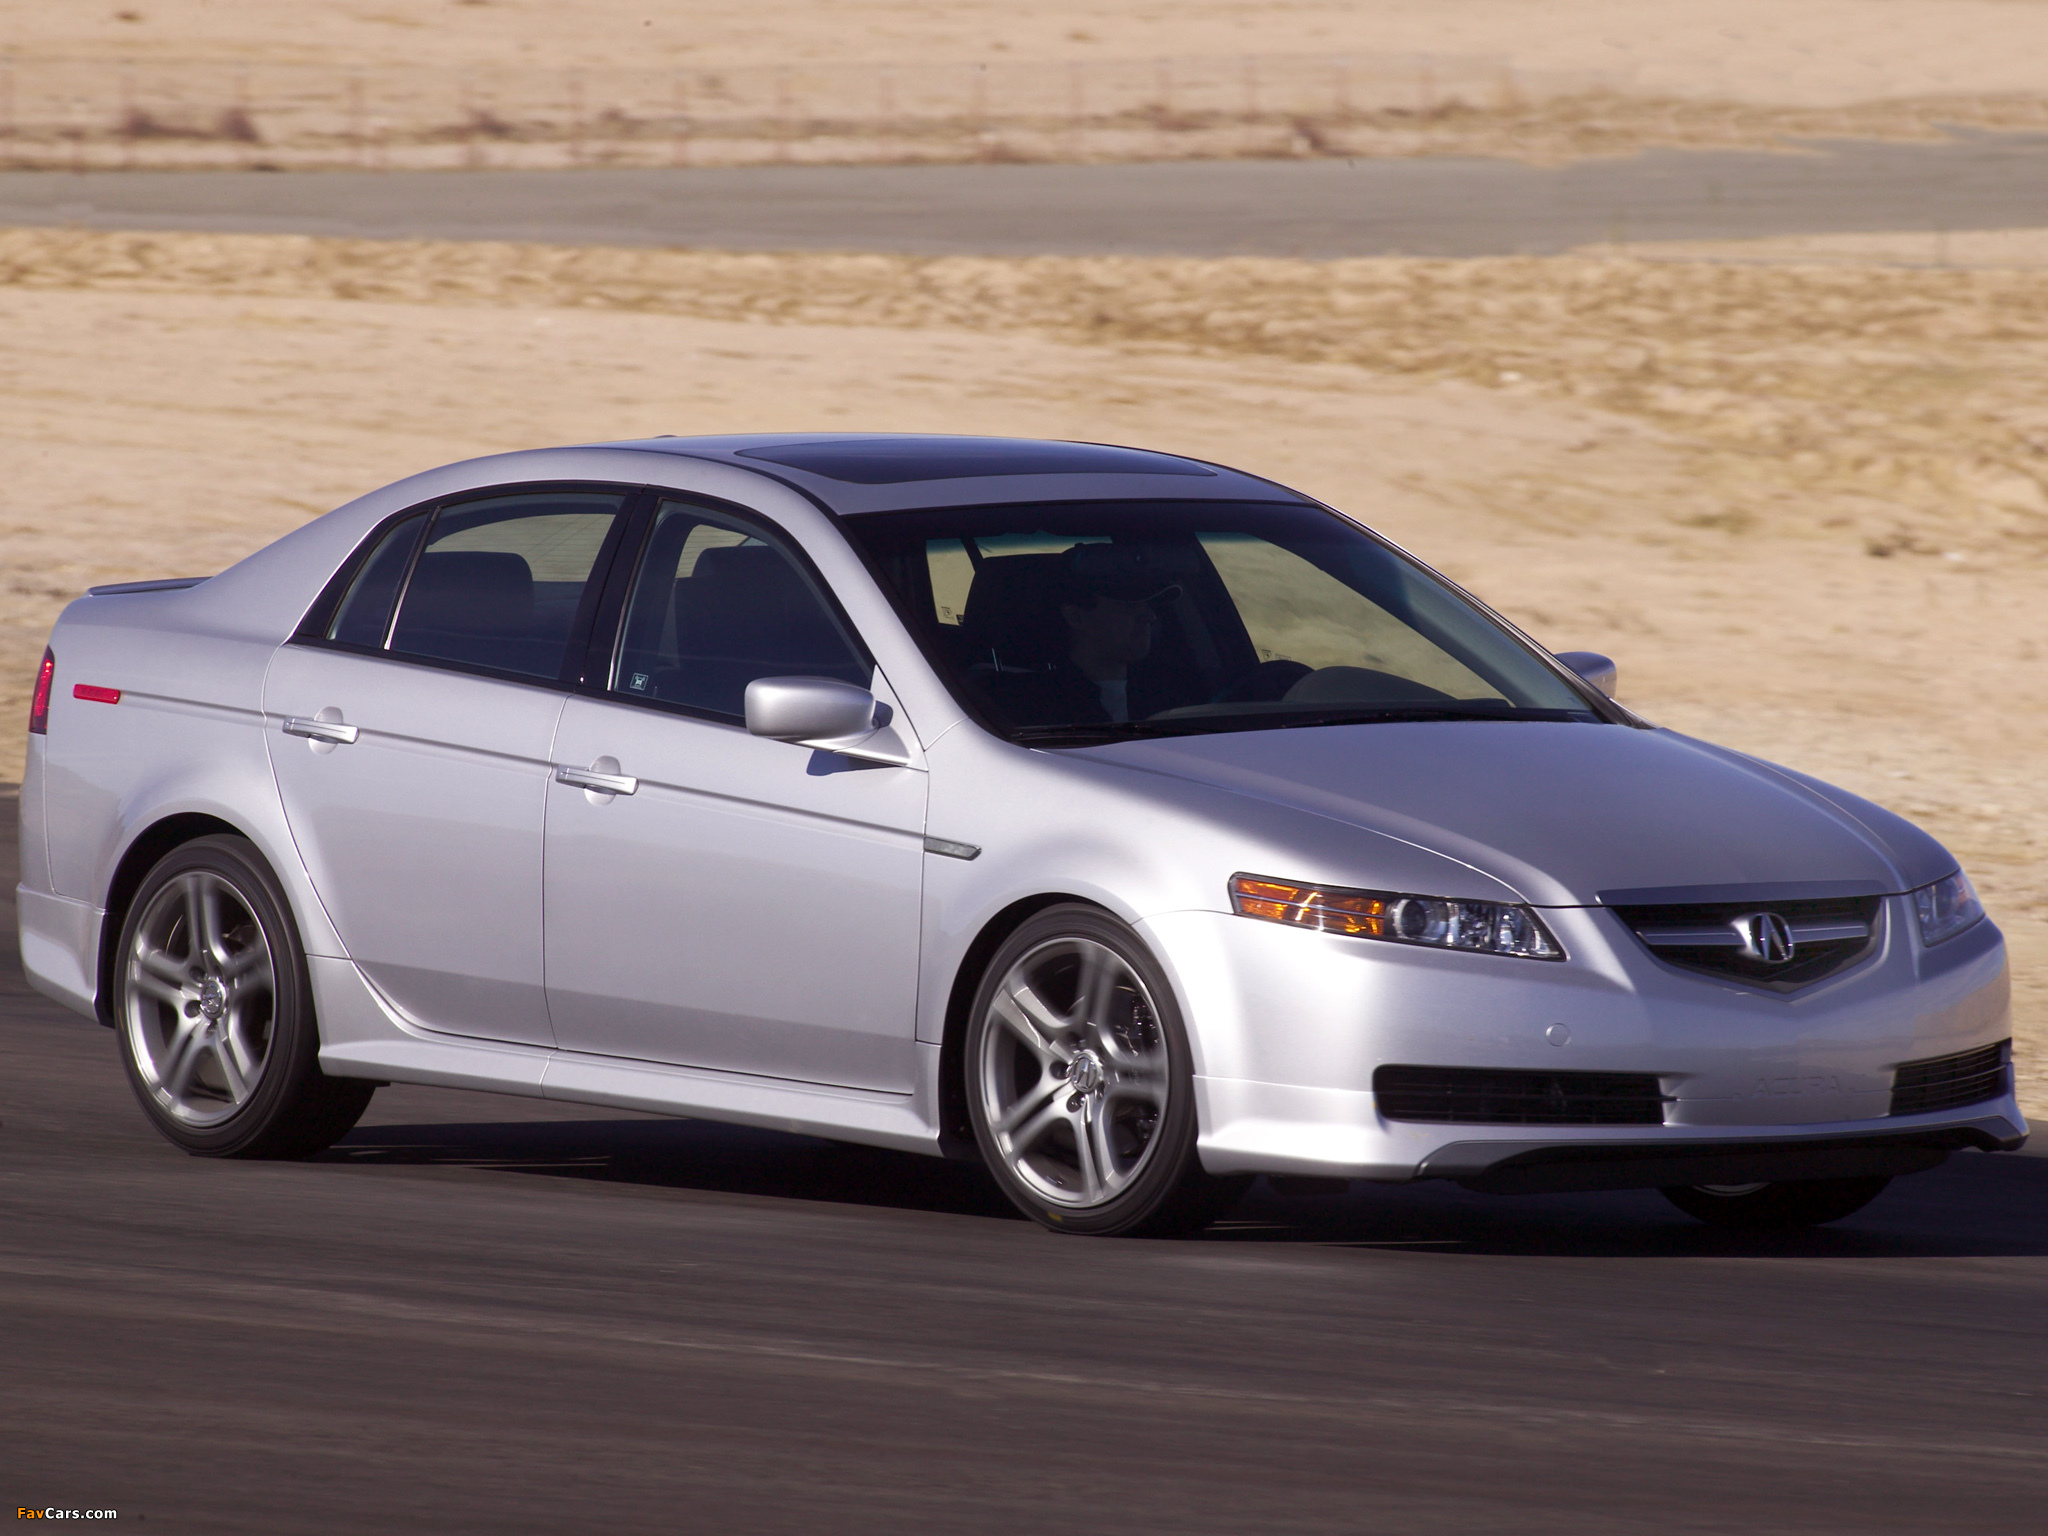 Acura Tl A Spec 2004 2007 Wallpapers 2048x1536 HD Wallpapers Download free images and photos [musssic.tk]